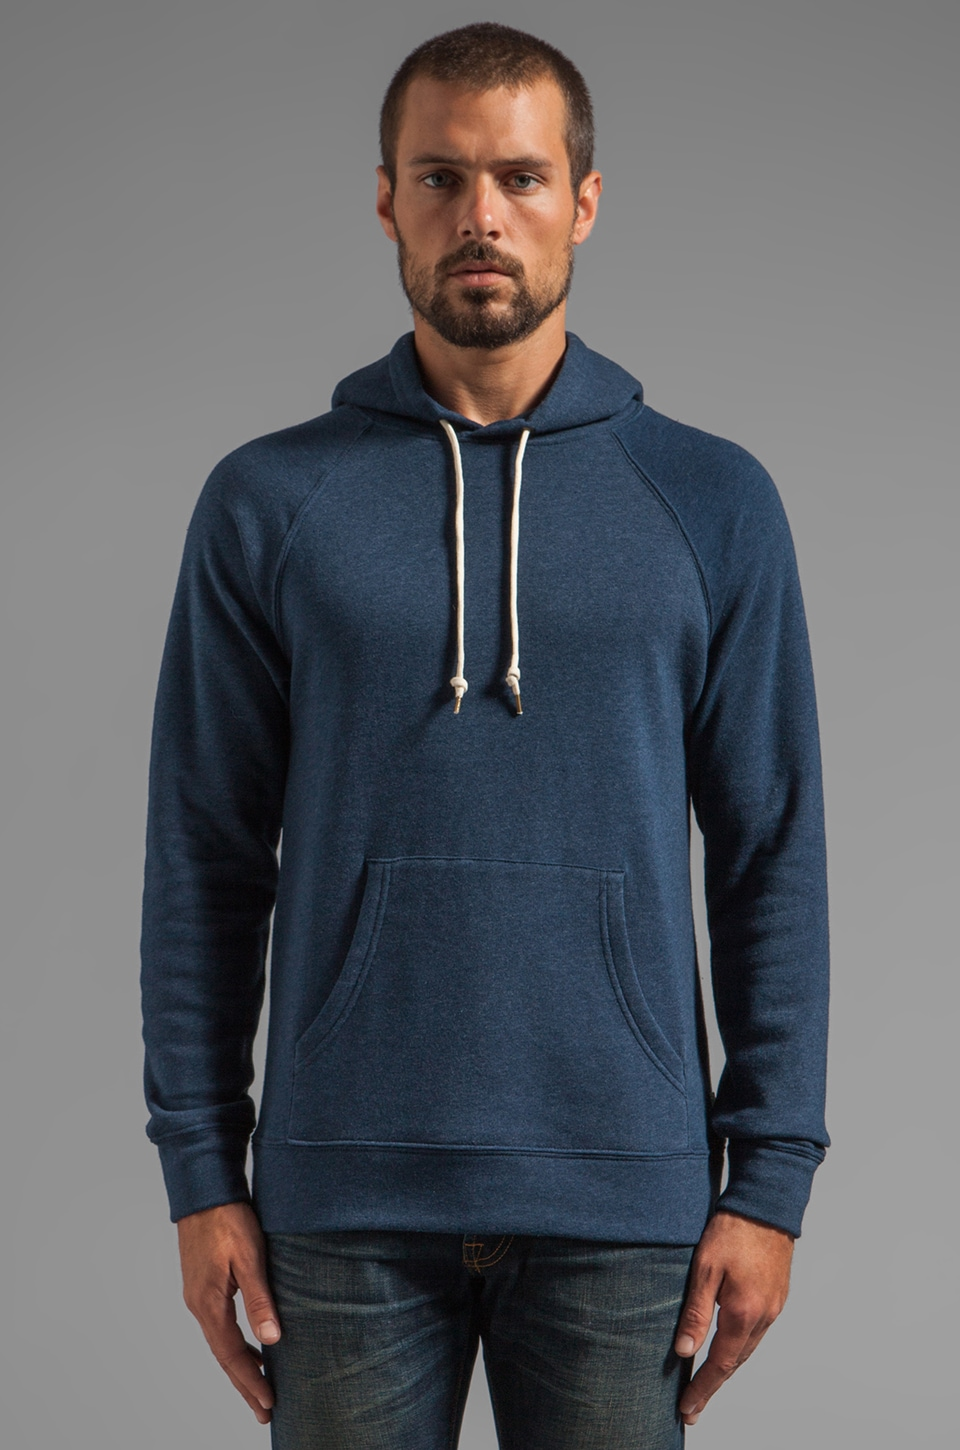 Obey Lofty Creature Comforts Pullover in Dark Navy